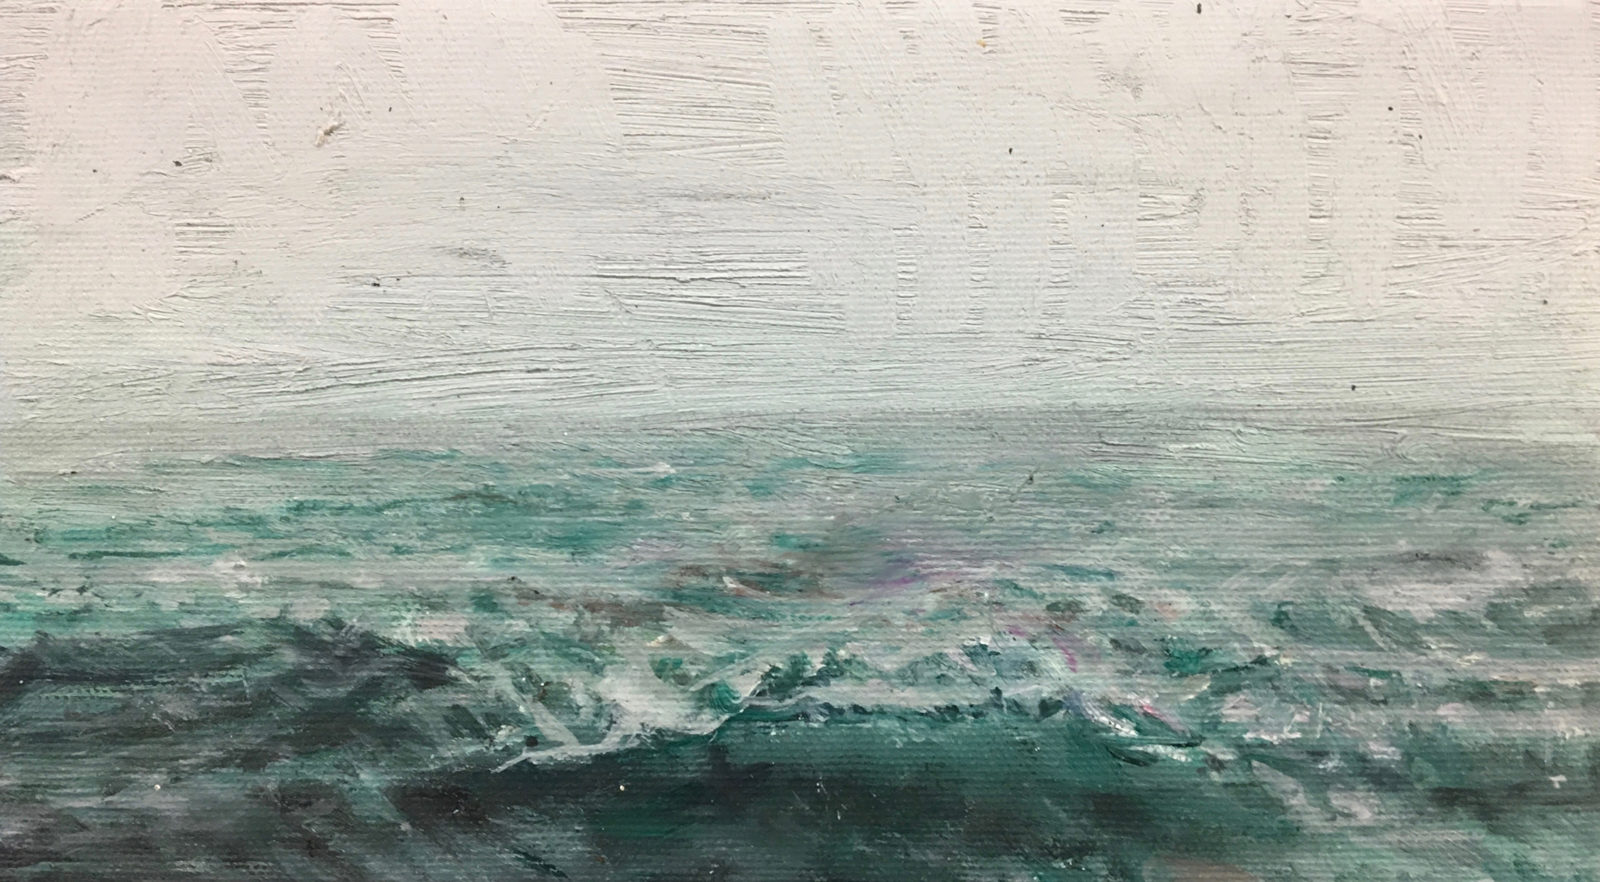 Seascape with Waves